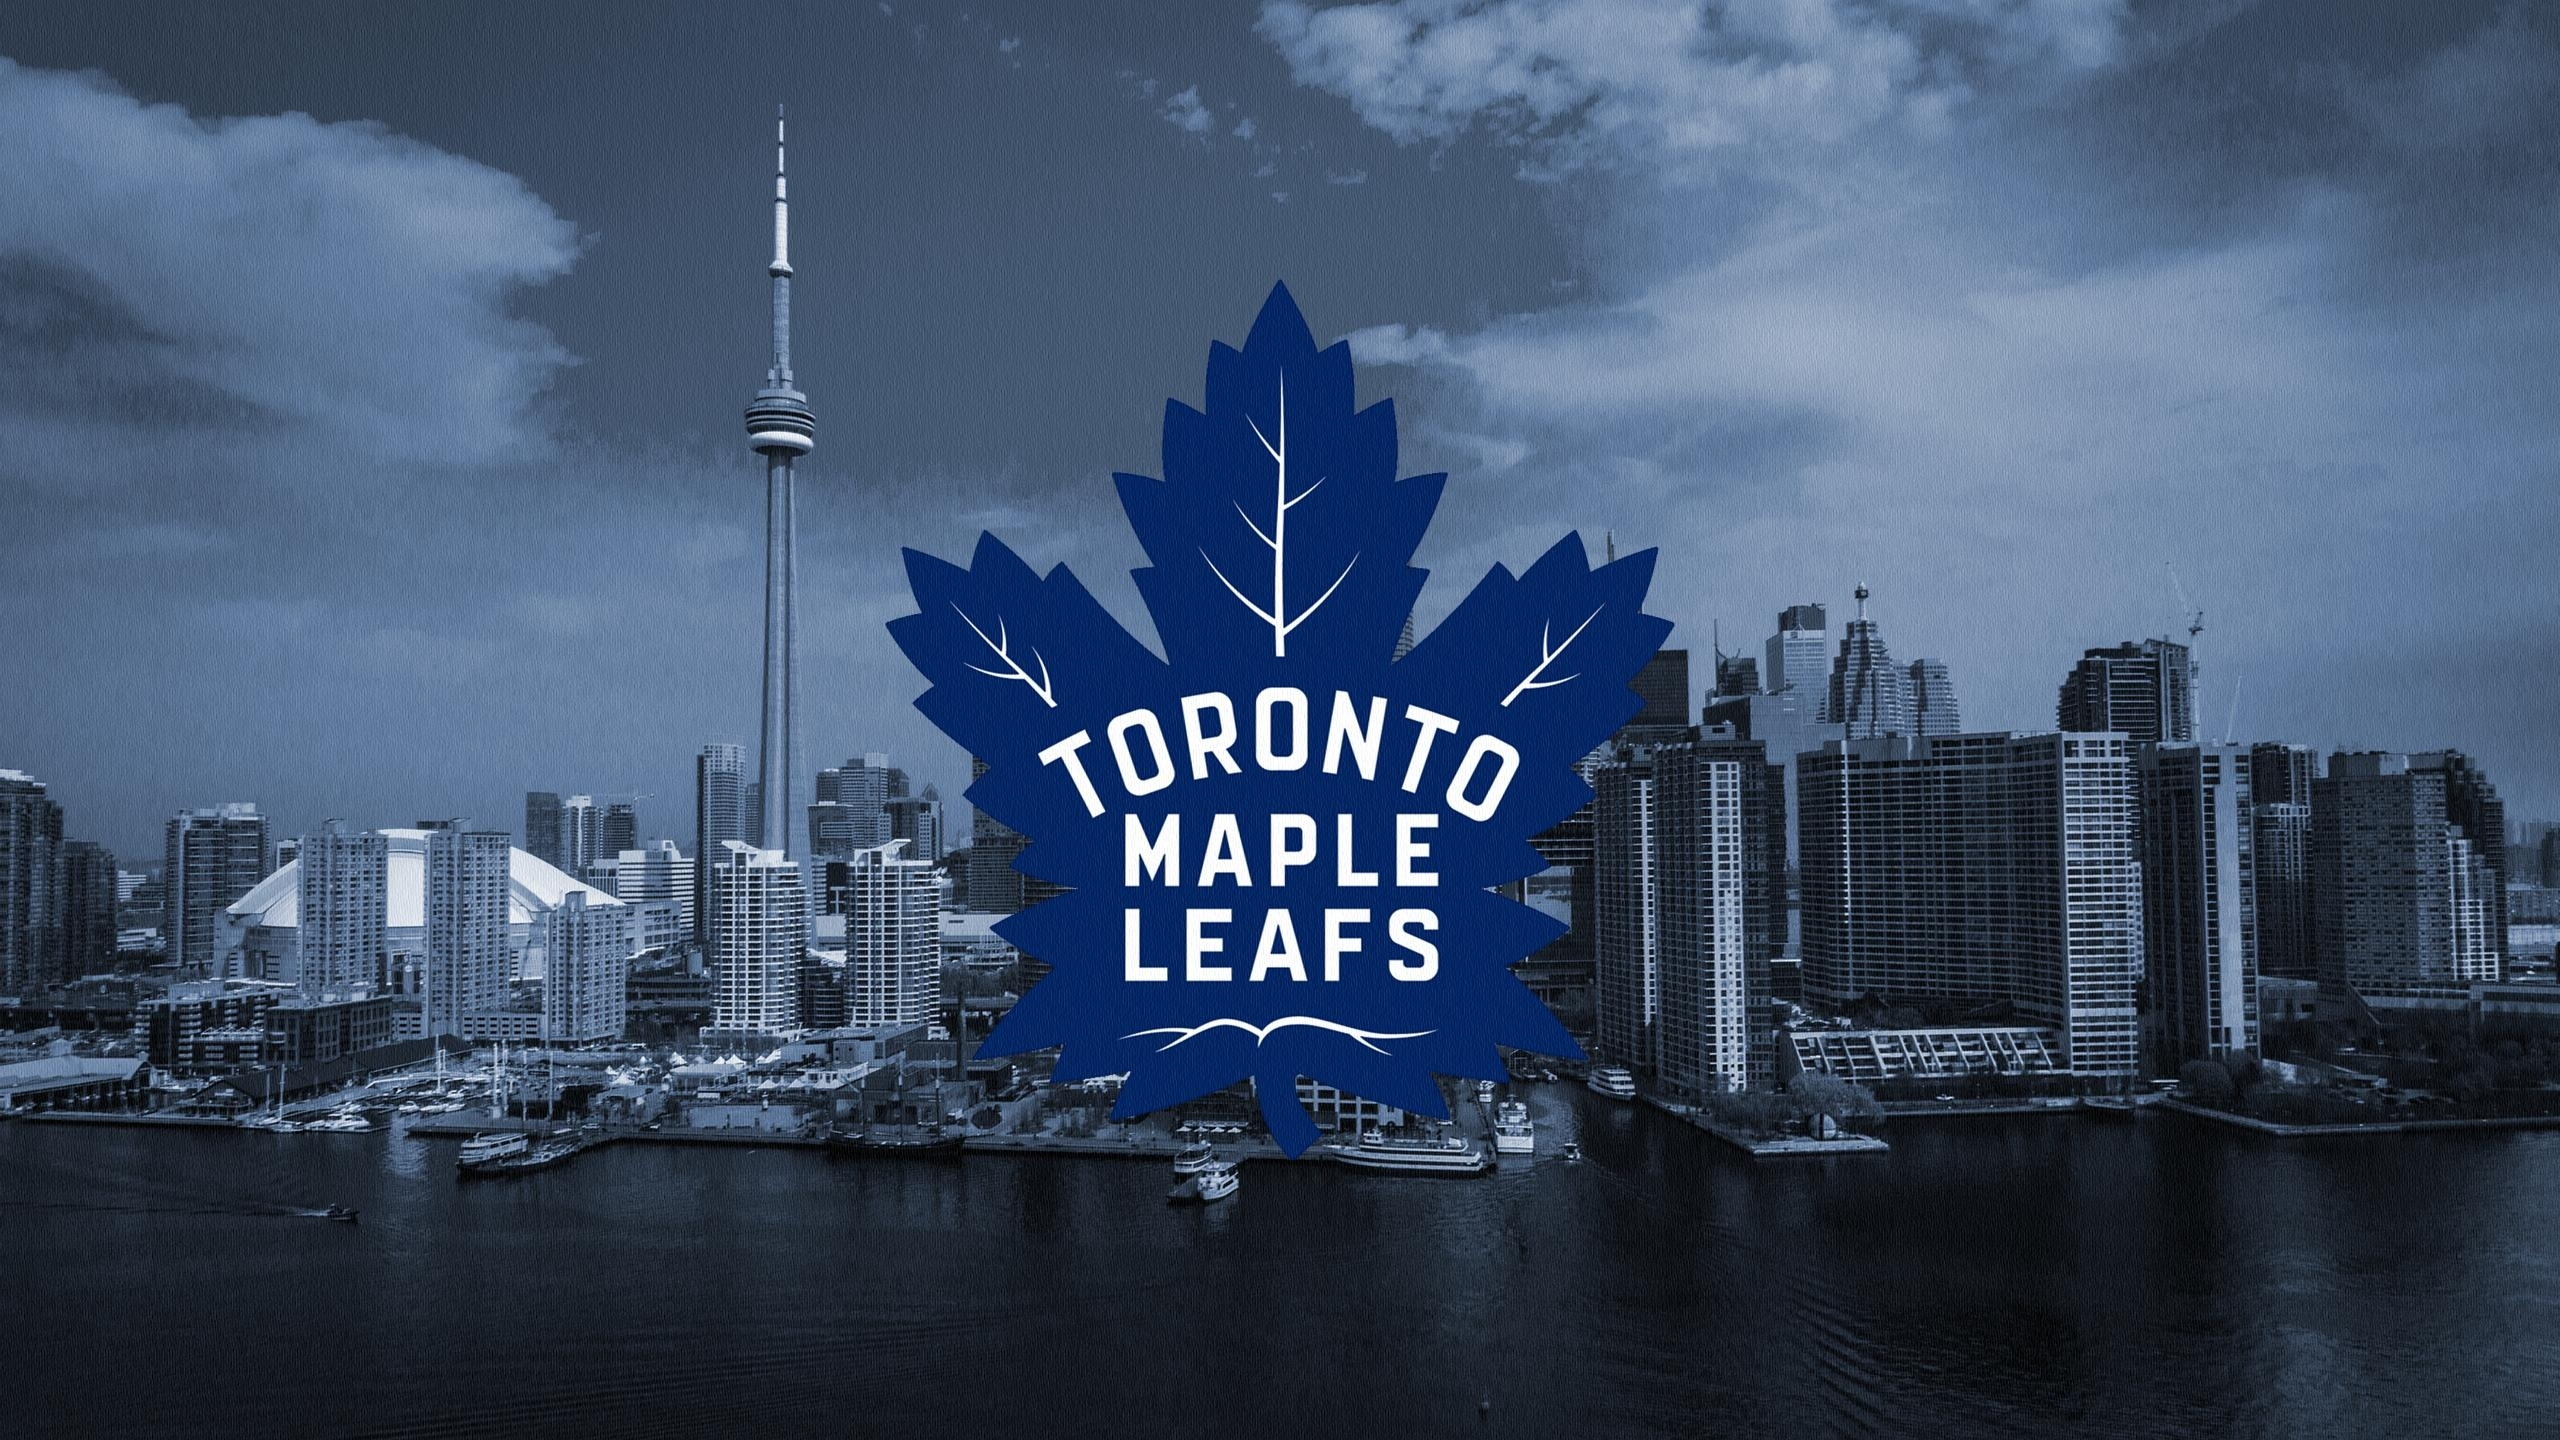 10 Most Popular Toronto Maple Leafs Wallpaper FULL HD 1080p For PC Background